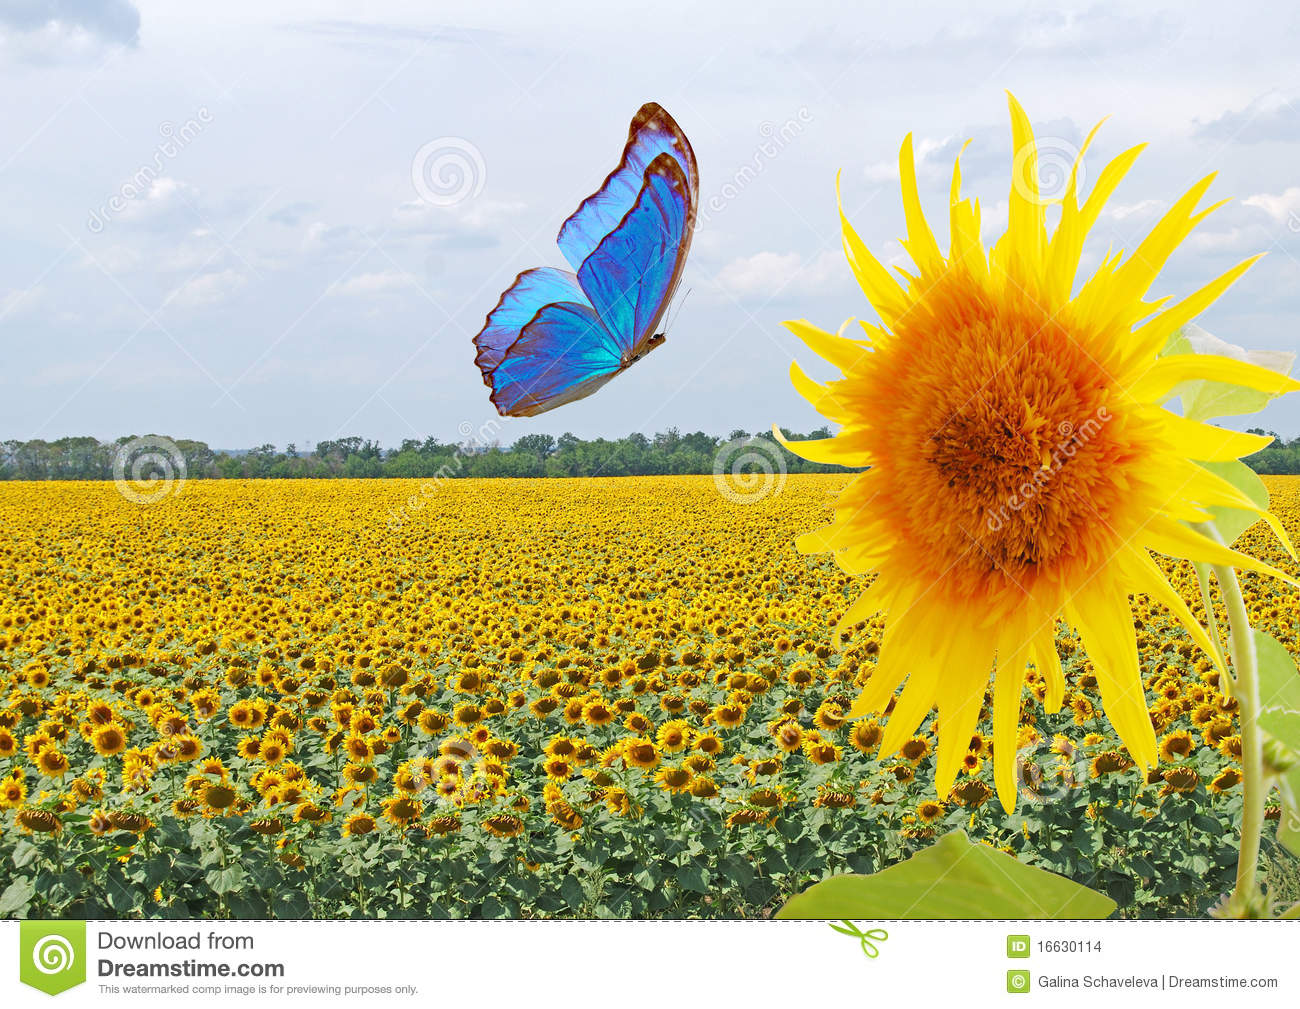 Blue Butterfly And Sunflower Stock Images - Image: 16630114